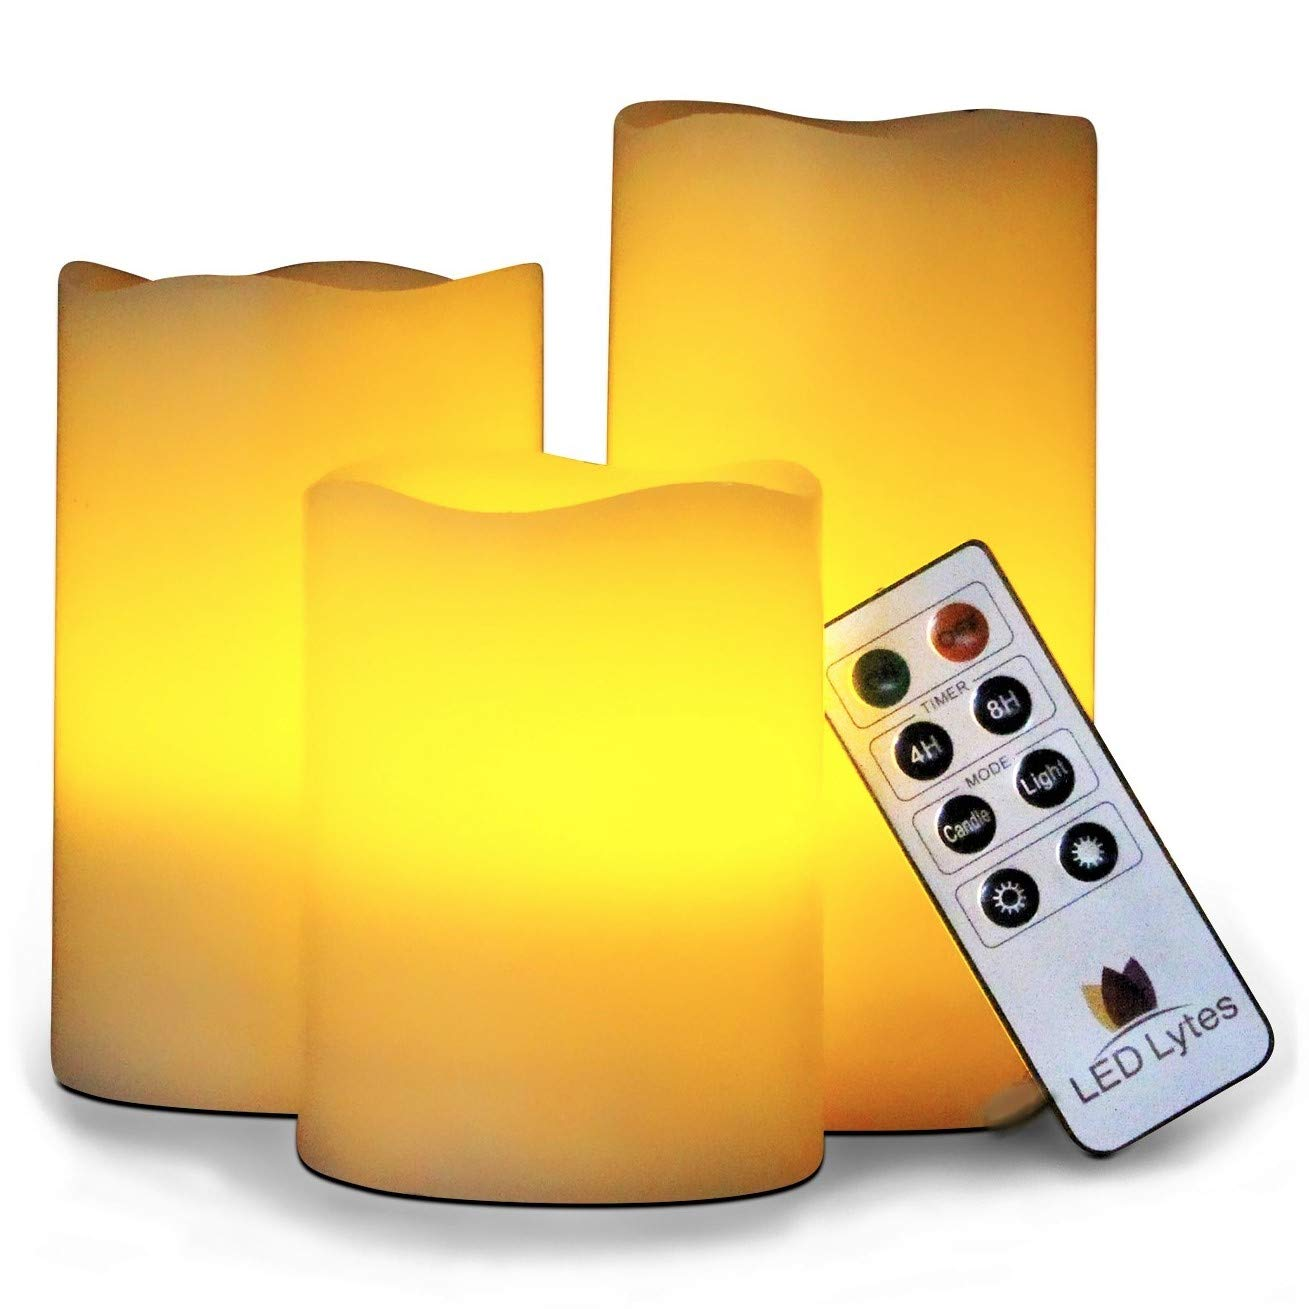 LED Lytes Flickering Flameless Candles - Set of 3 Ivory Wax Flickering Amber Yellow Flame, Auto-Off Timer Remote Control Fake Battery Operated Candles by LED Lytes (Image #1)